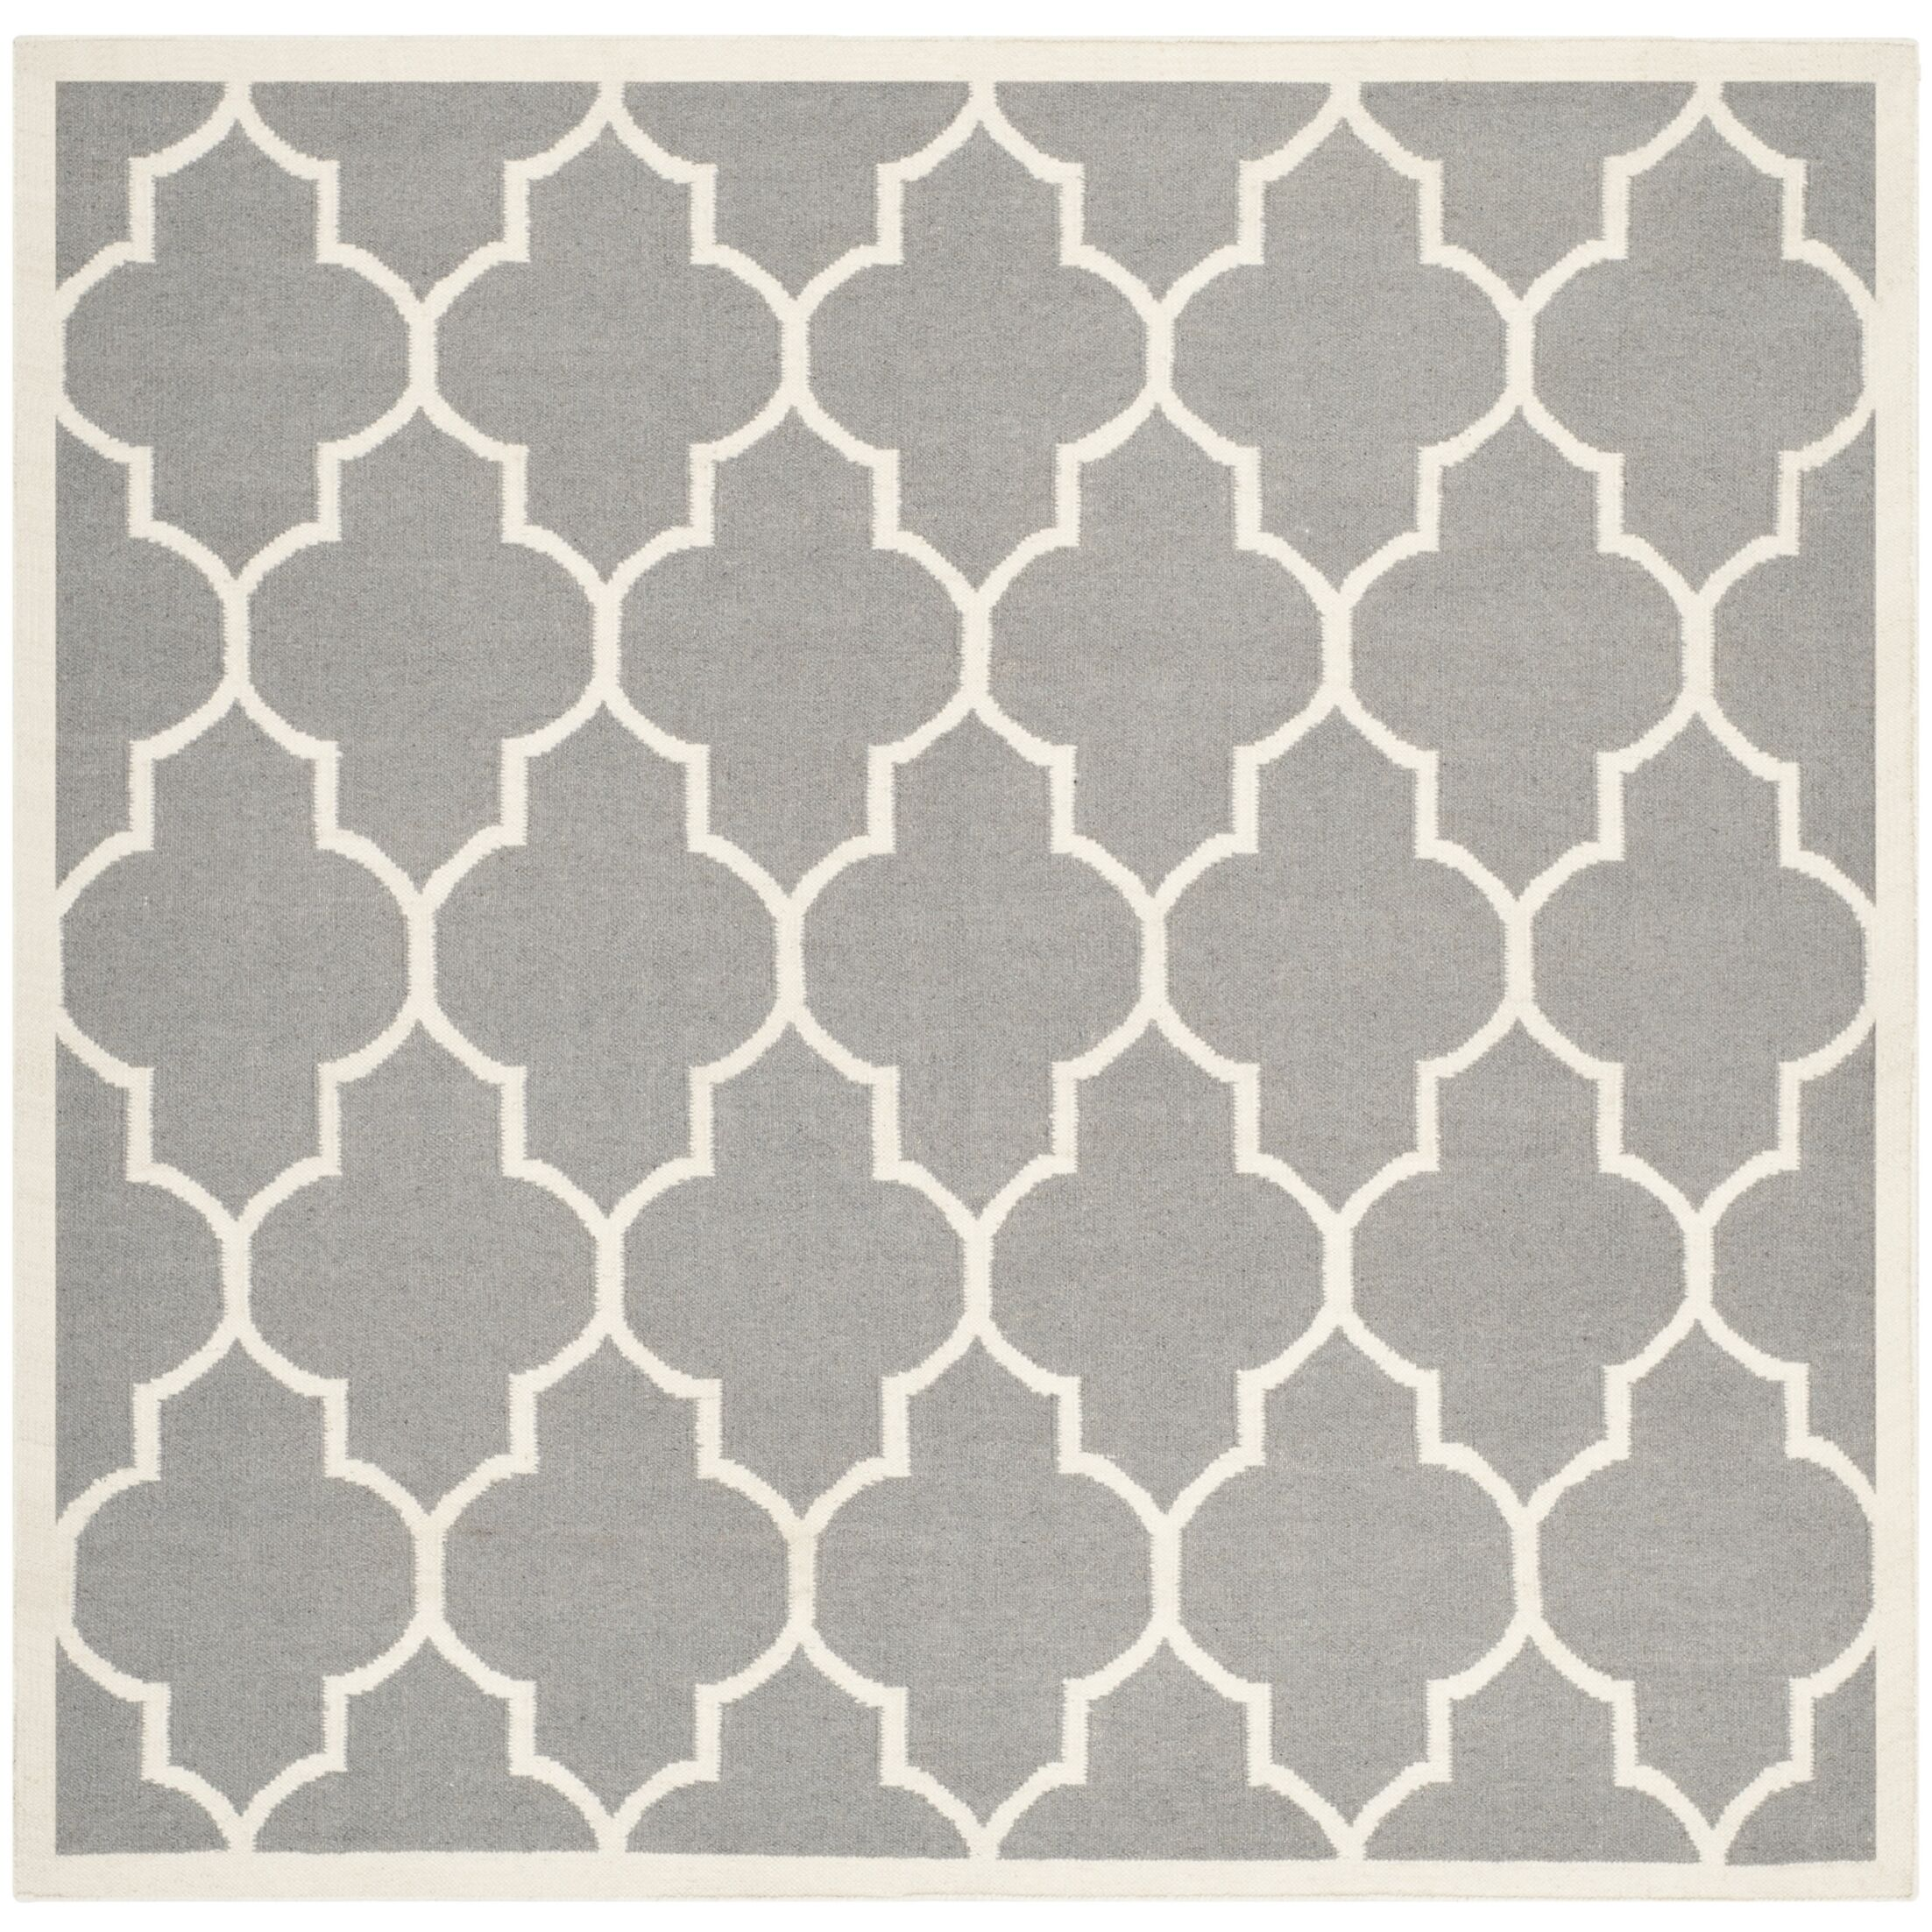 Dhurries Hand-Woven Wool Gray/Ivory Area Rug Rug Size: Square 8'